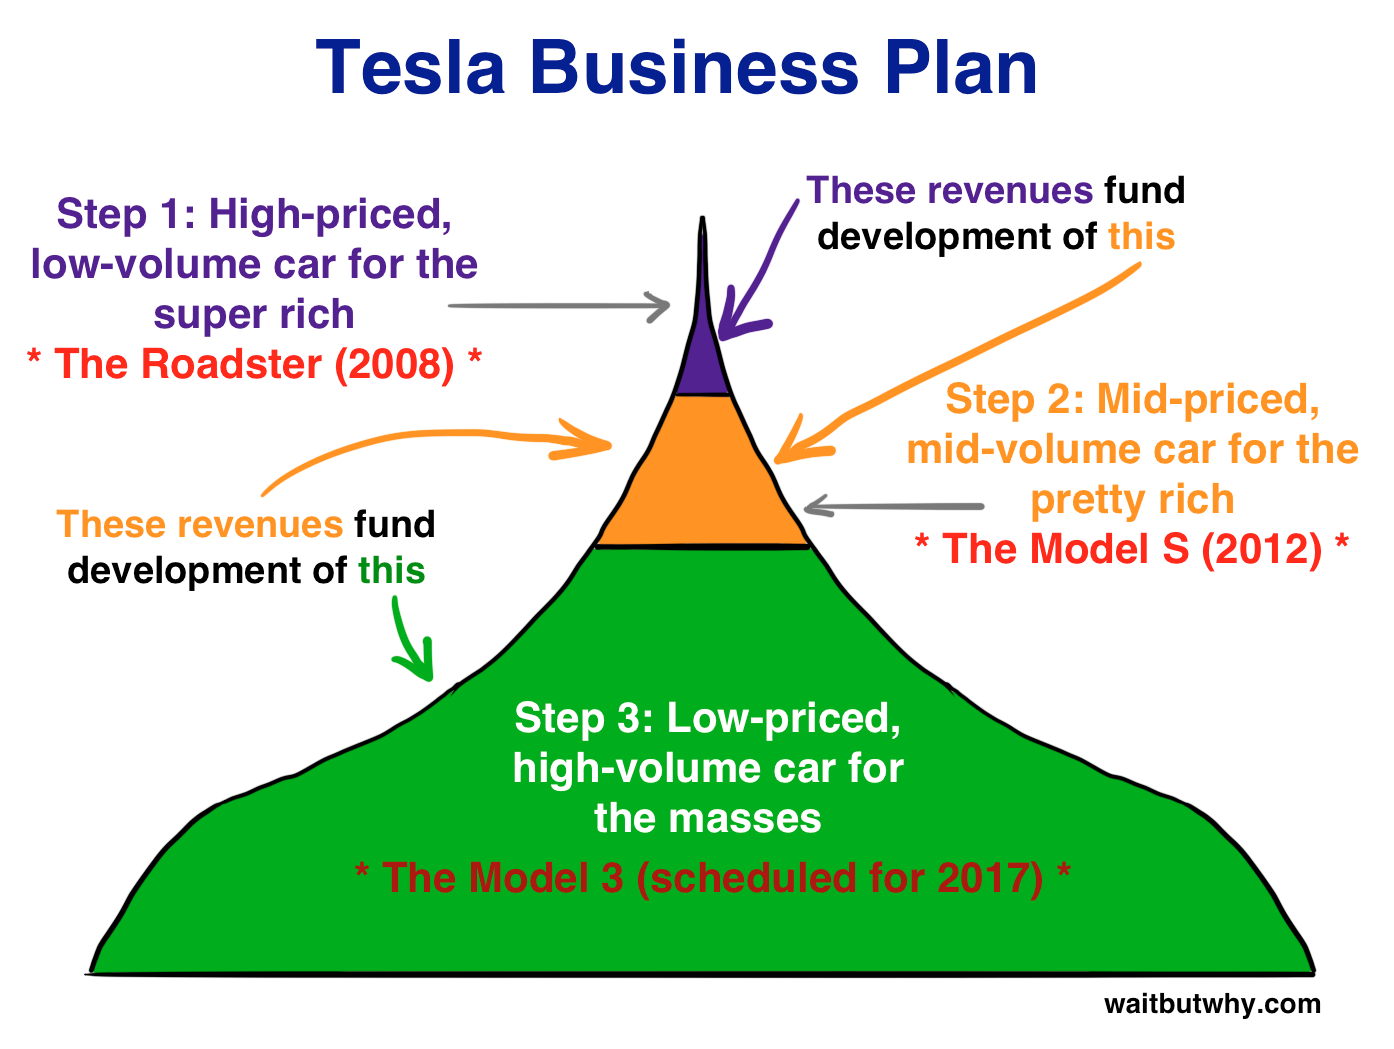 Tesla Master Plan Part 1. Part 2 is well underway now.